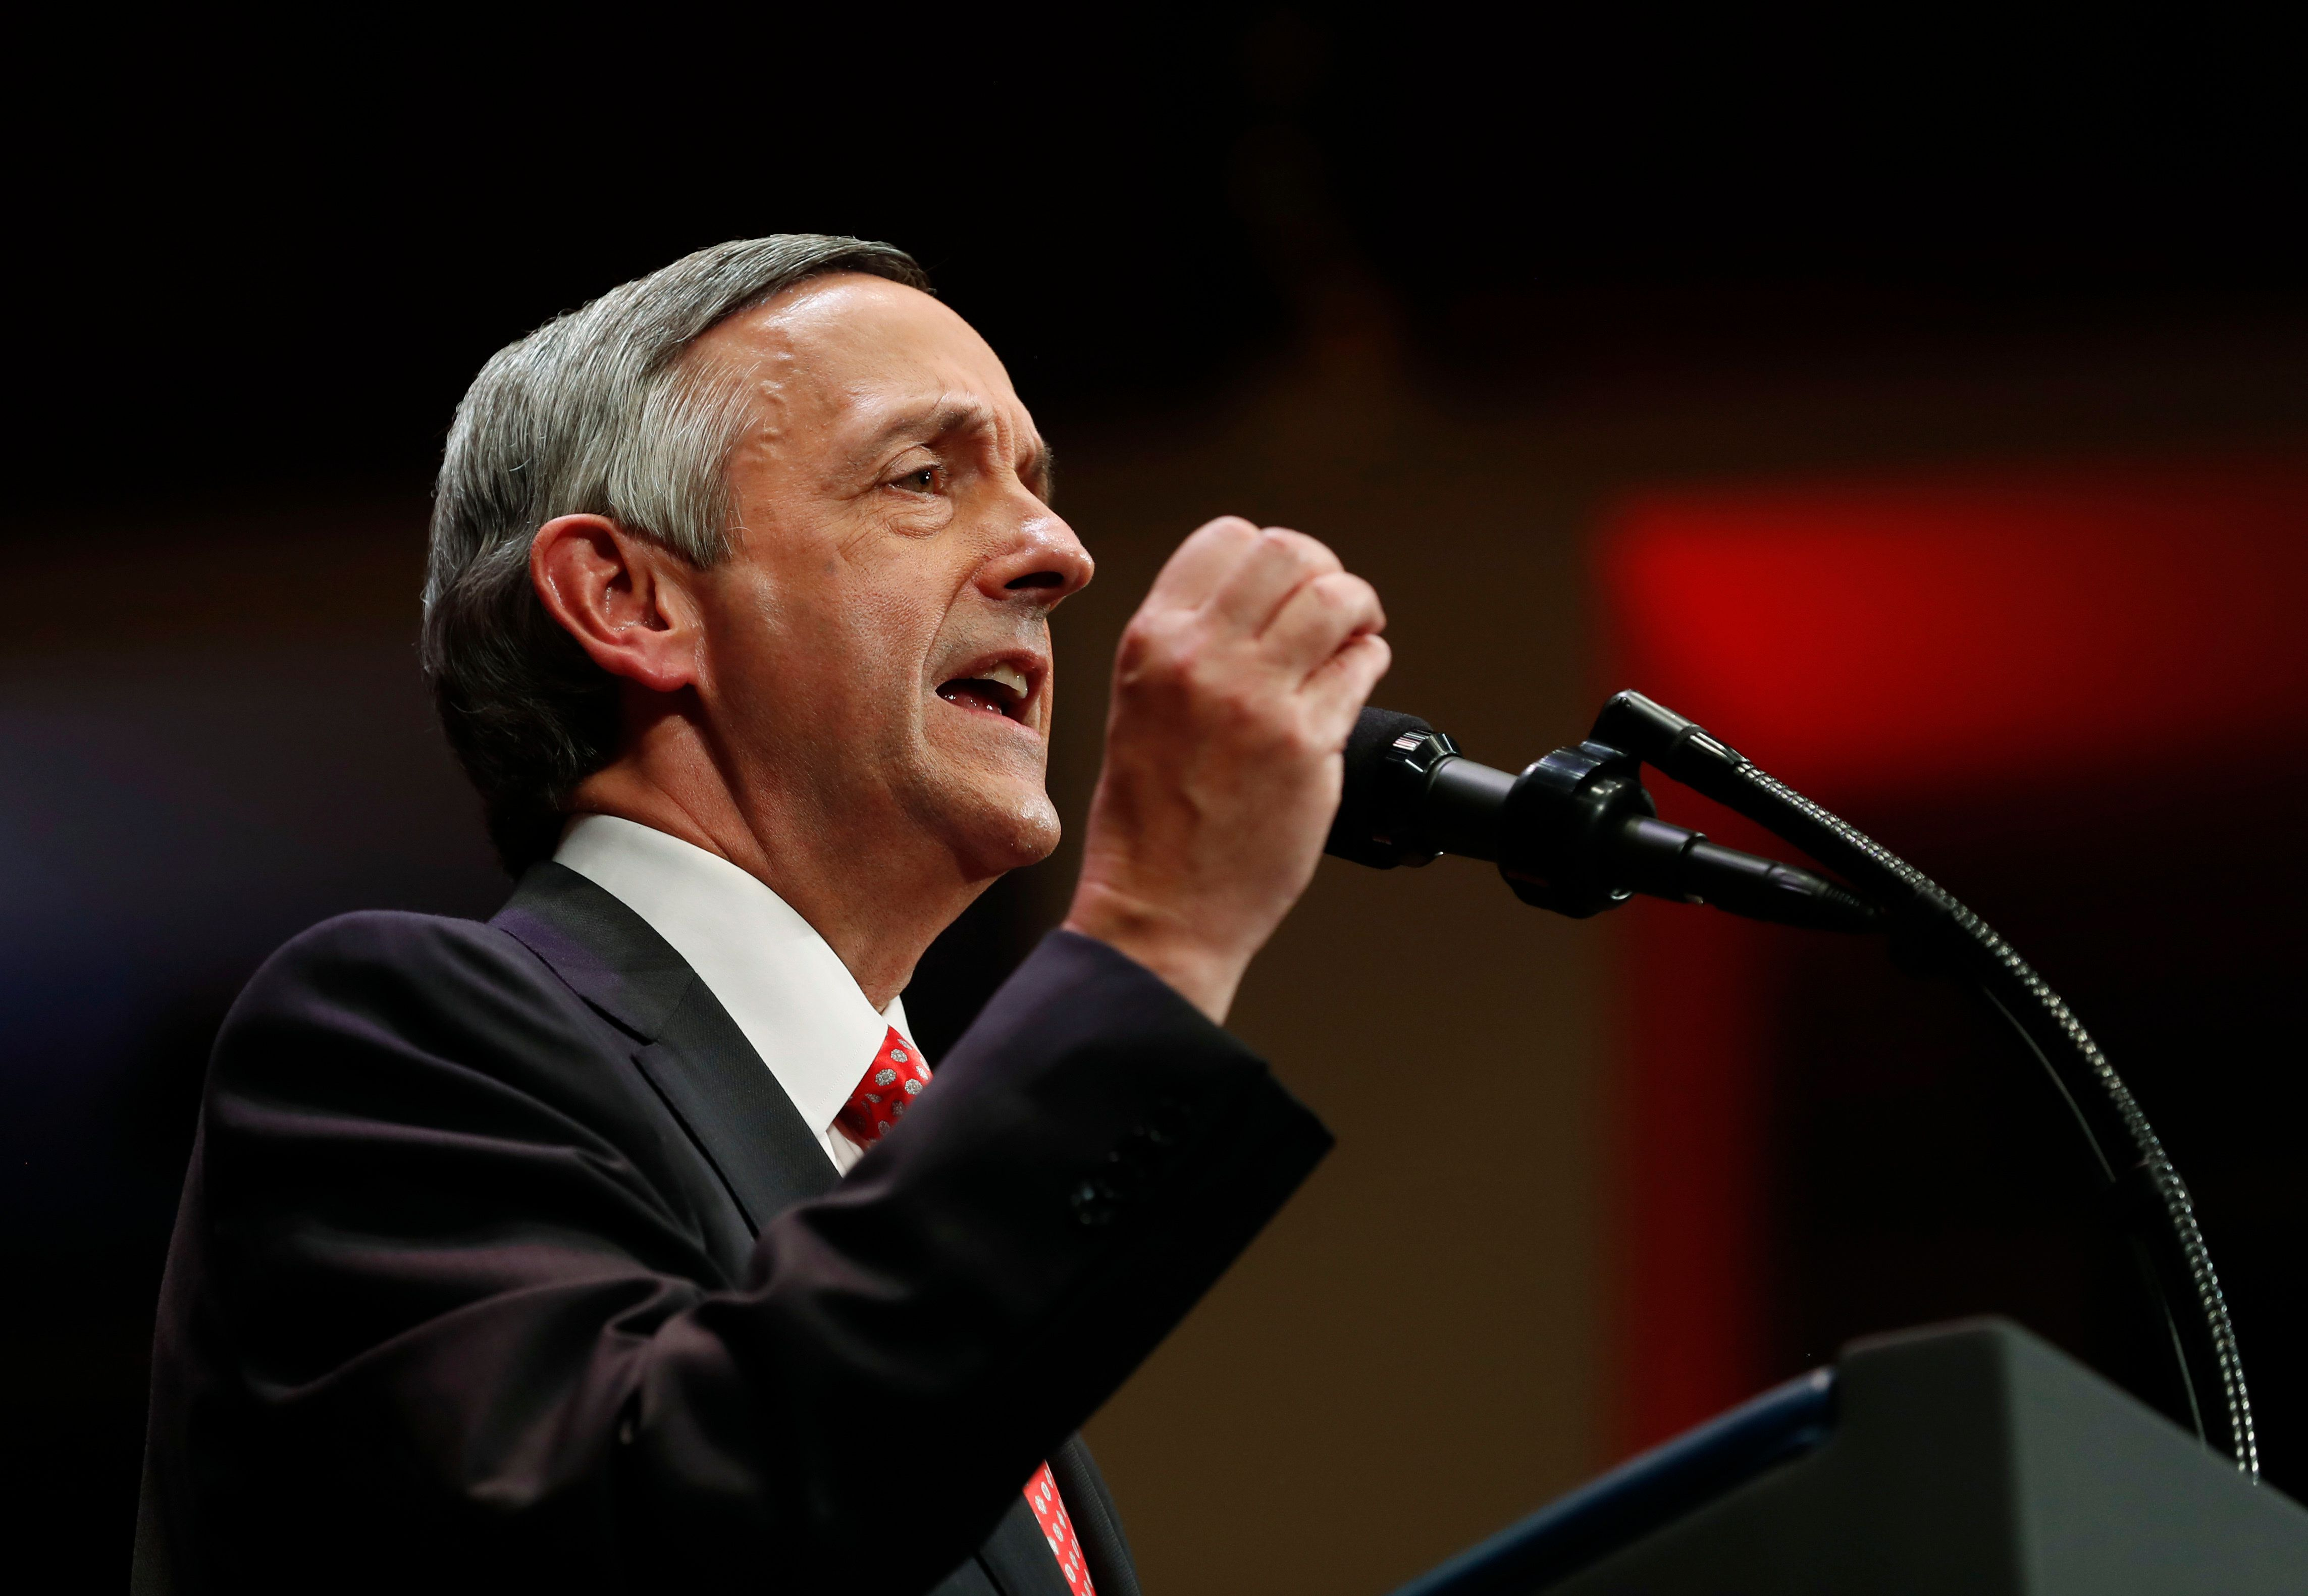 "FILE - In this July 1, 2017, file photo, pastor Robert Jeffress, of the First Baptist Church in Dallas, speaks as he introduces President Donald Trump during the Celebrate Freedom event at the Kennedy Center for the Performing Arts in Washington. In a tweet Sunday, May 13, 2018, Senate candidate Mitt Romney of Utah says the prominent Baptist minister, Jeffress, shouldn't be giving the prayer that opens the U.S. Embassy in Jerusalem because he's a ""religious bigot."" (AP Photo/Carolyn Kaster, File)"